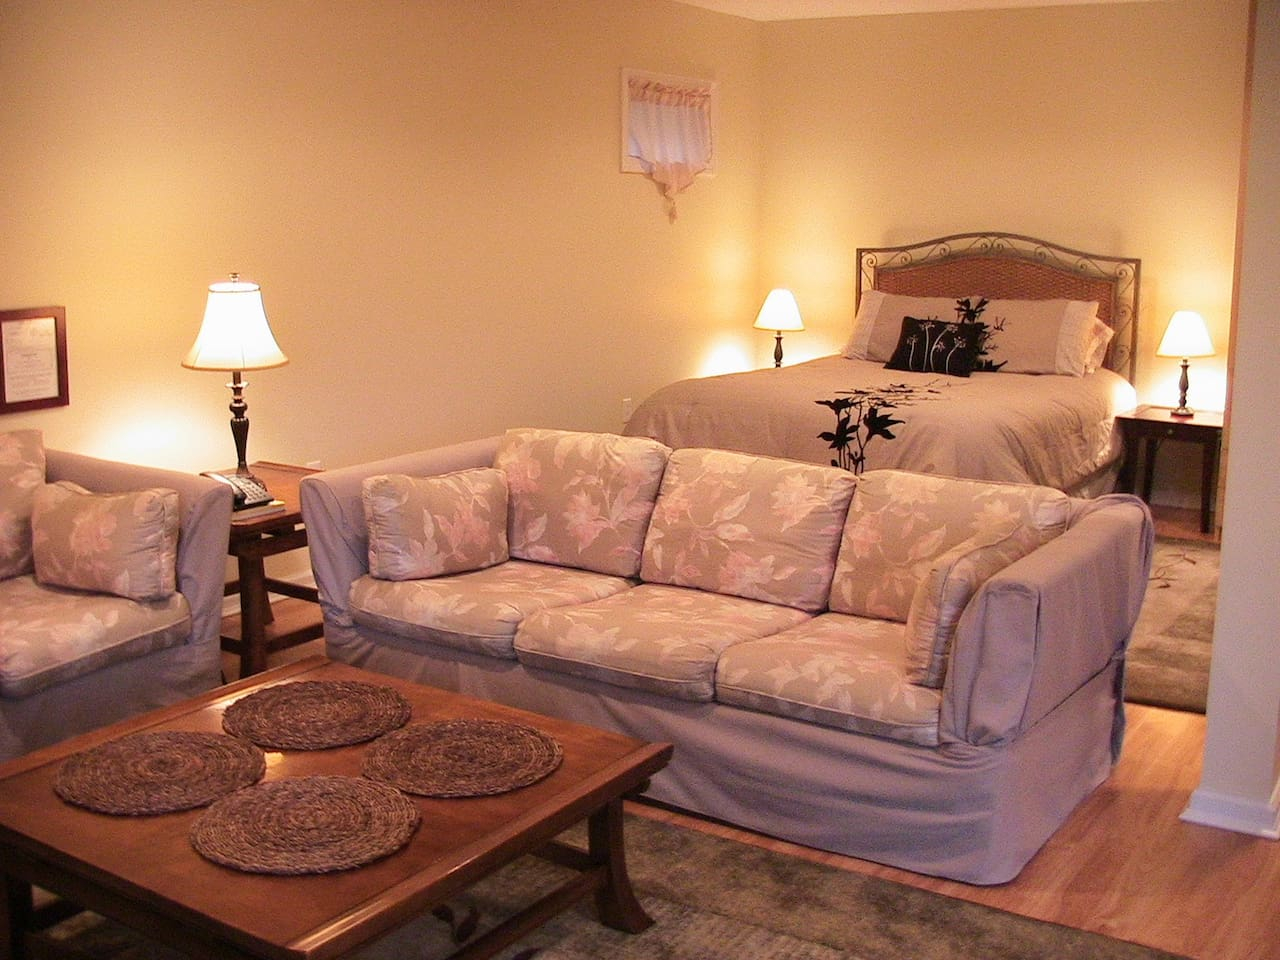 Relax in this spacious Studio apartment with separate living and sleeping area!